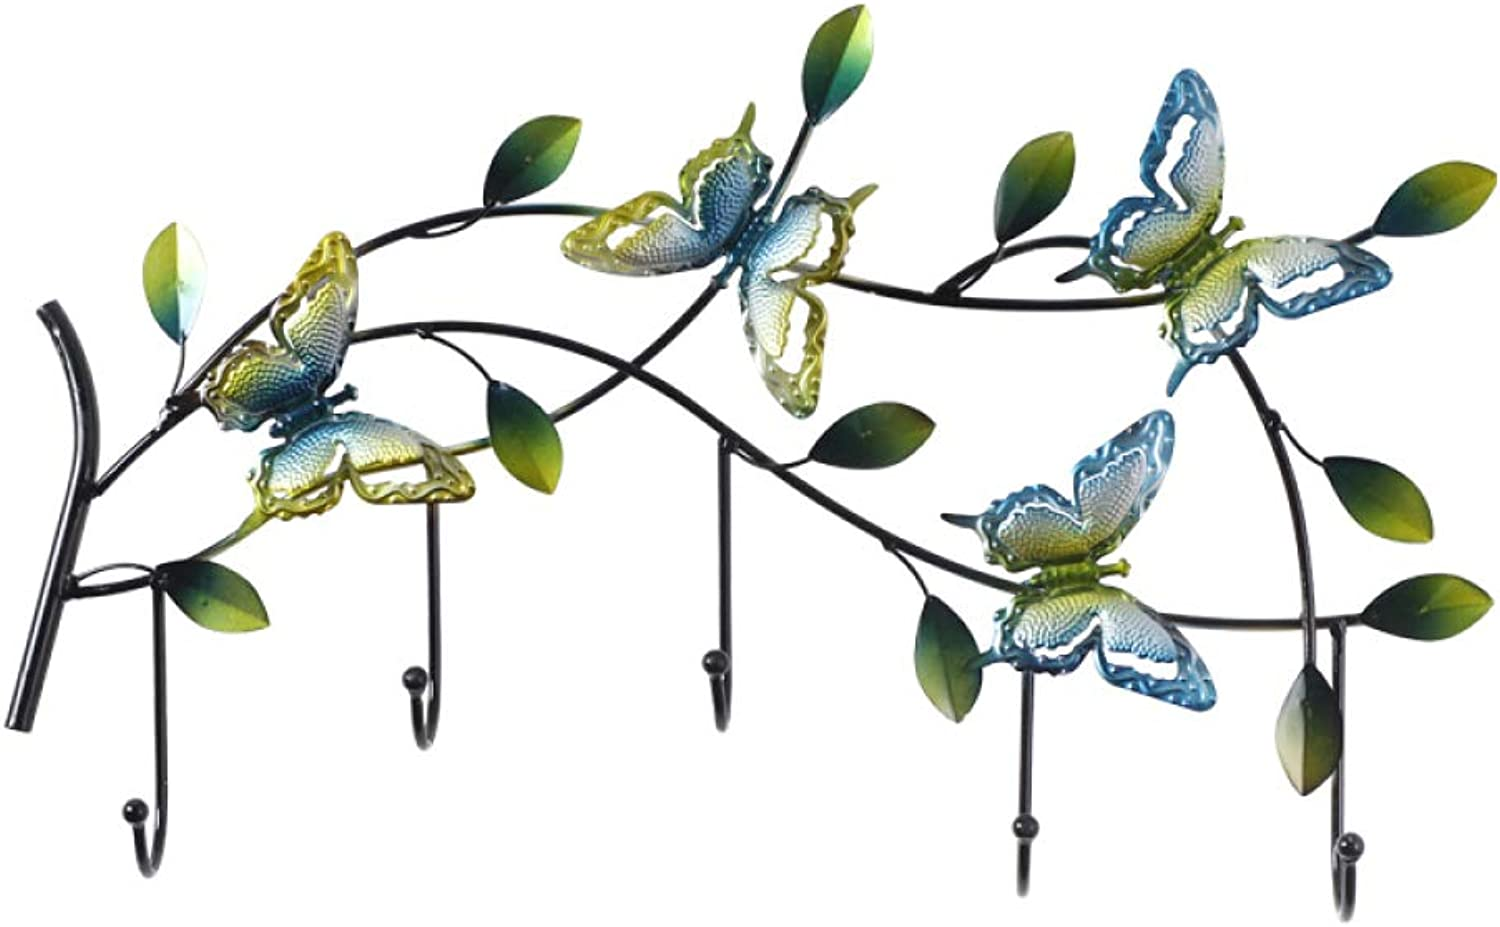 Country Hook Coat Hook Key Hook - Wrought Iron Butterfly - for Wall Wall Decoration Doorway,A